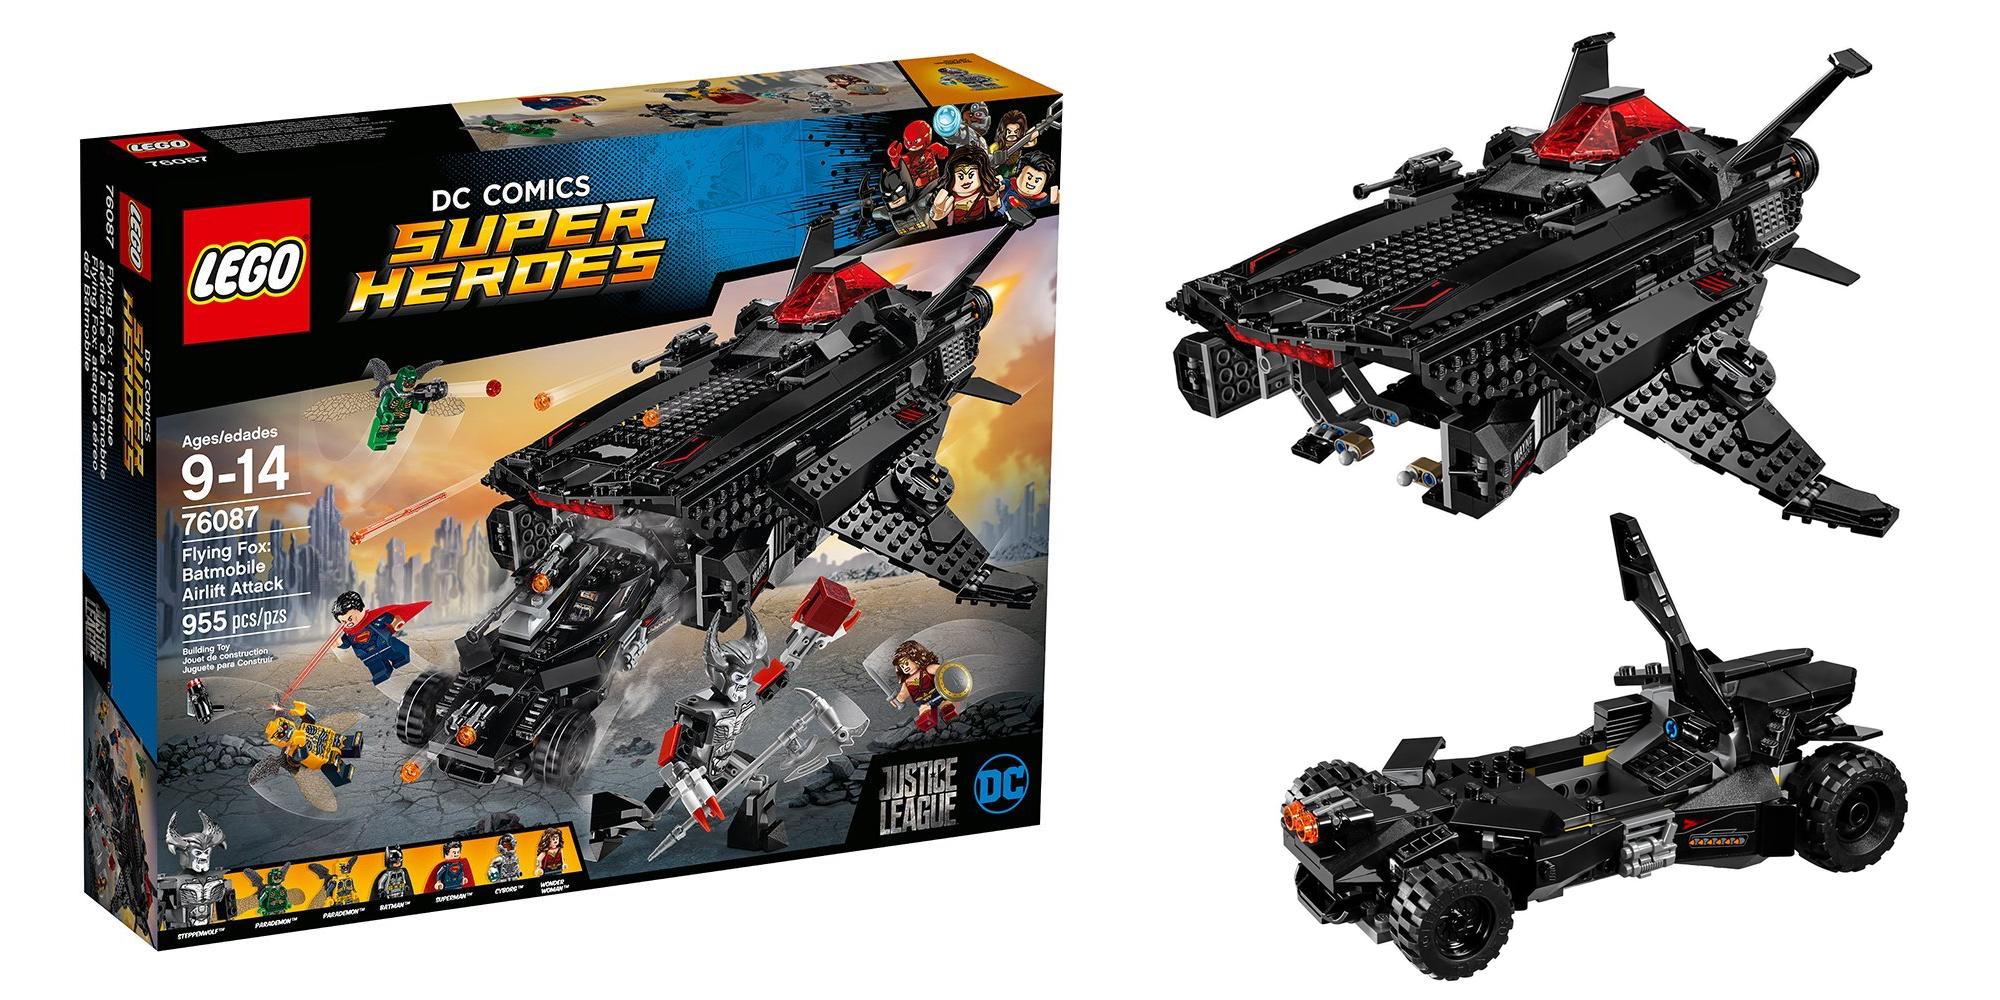 Team up w/ Batman & assemble this 955pc. LEGO kit for $93 (Reg. $130), more from $12